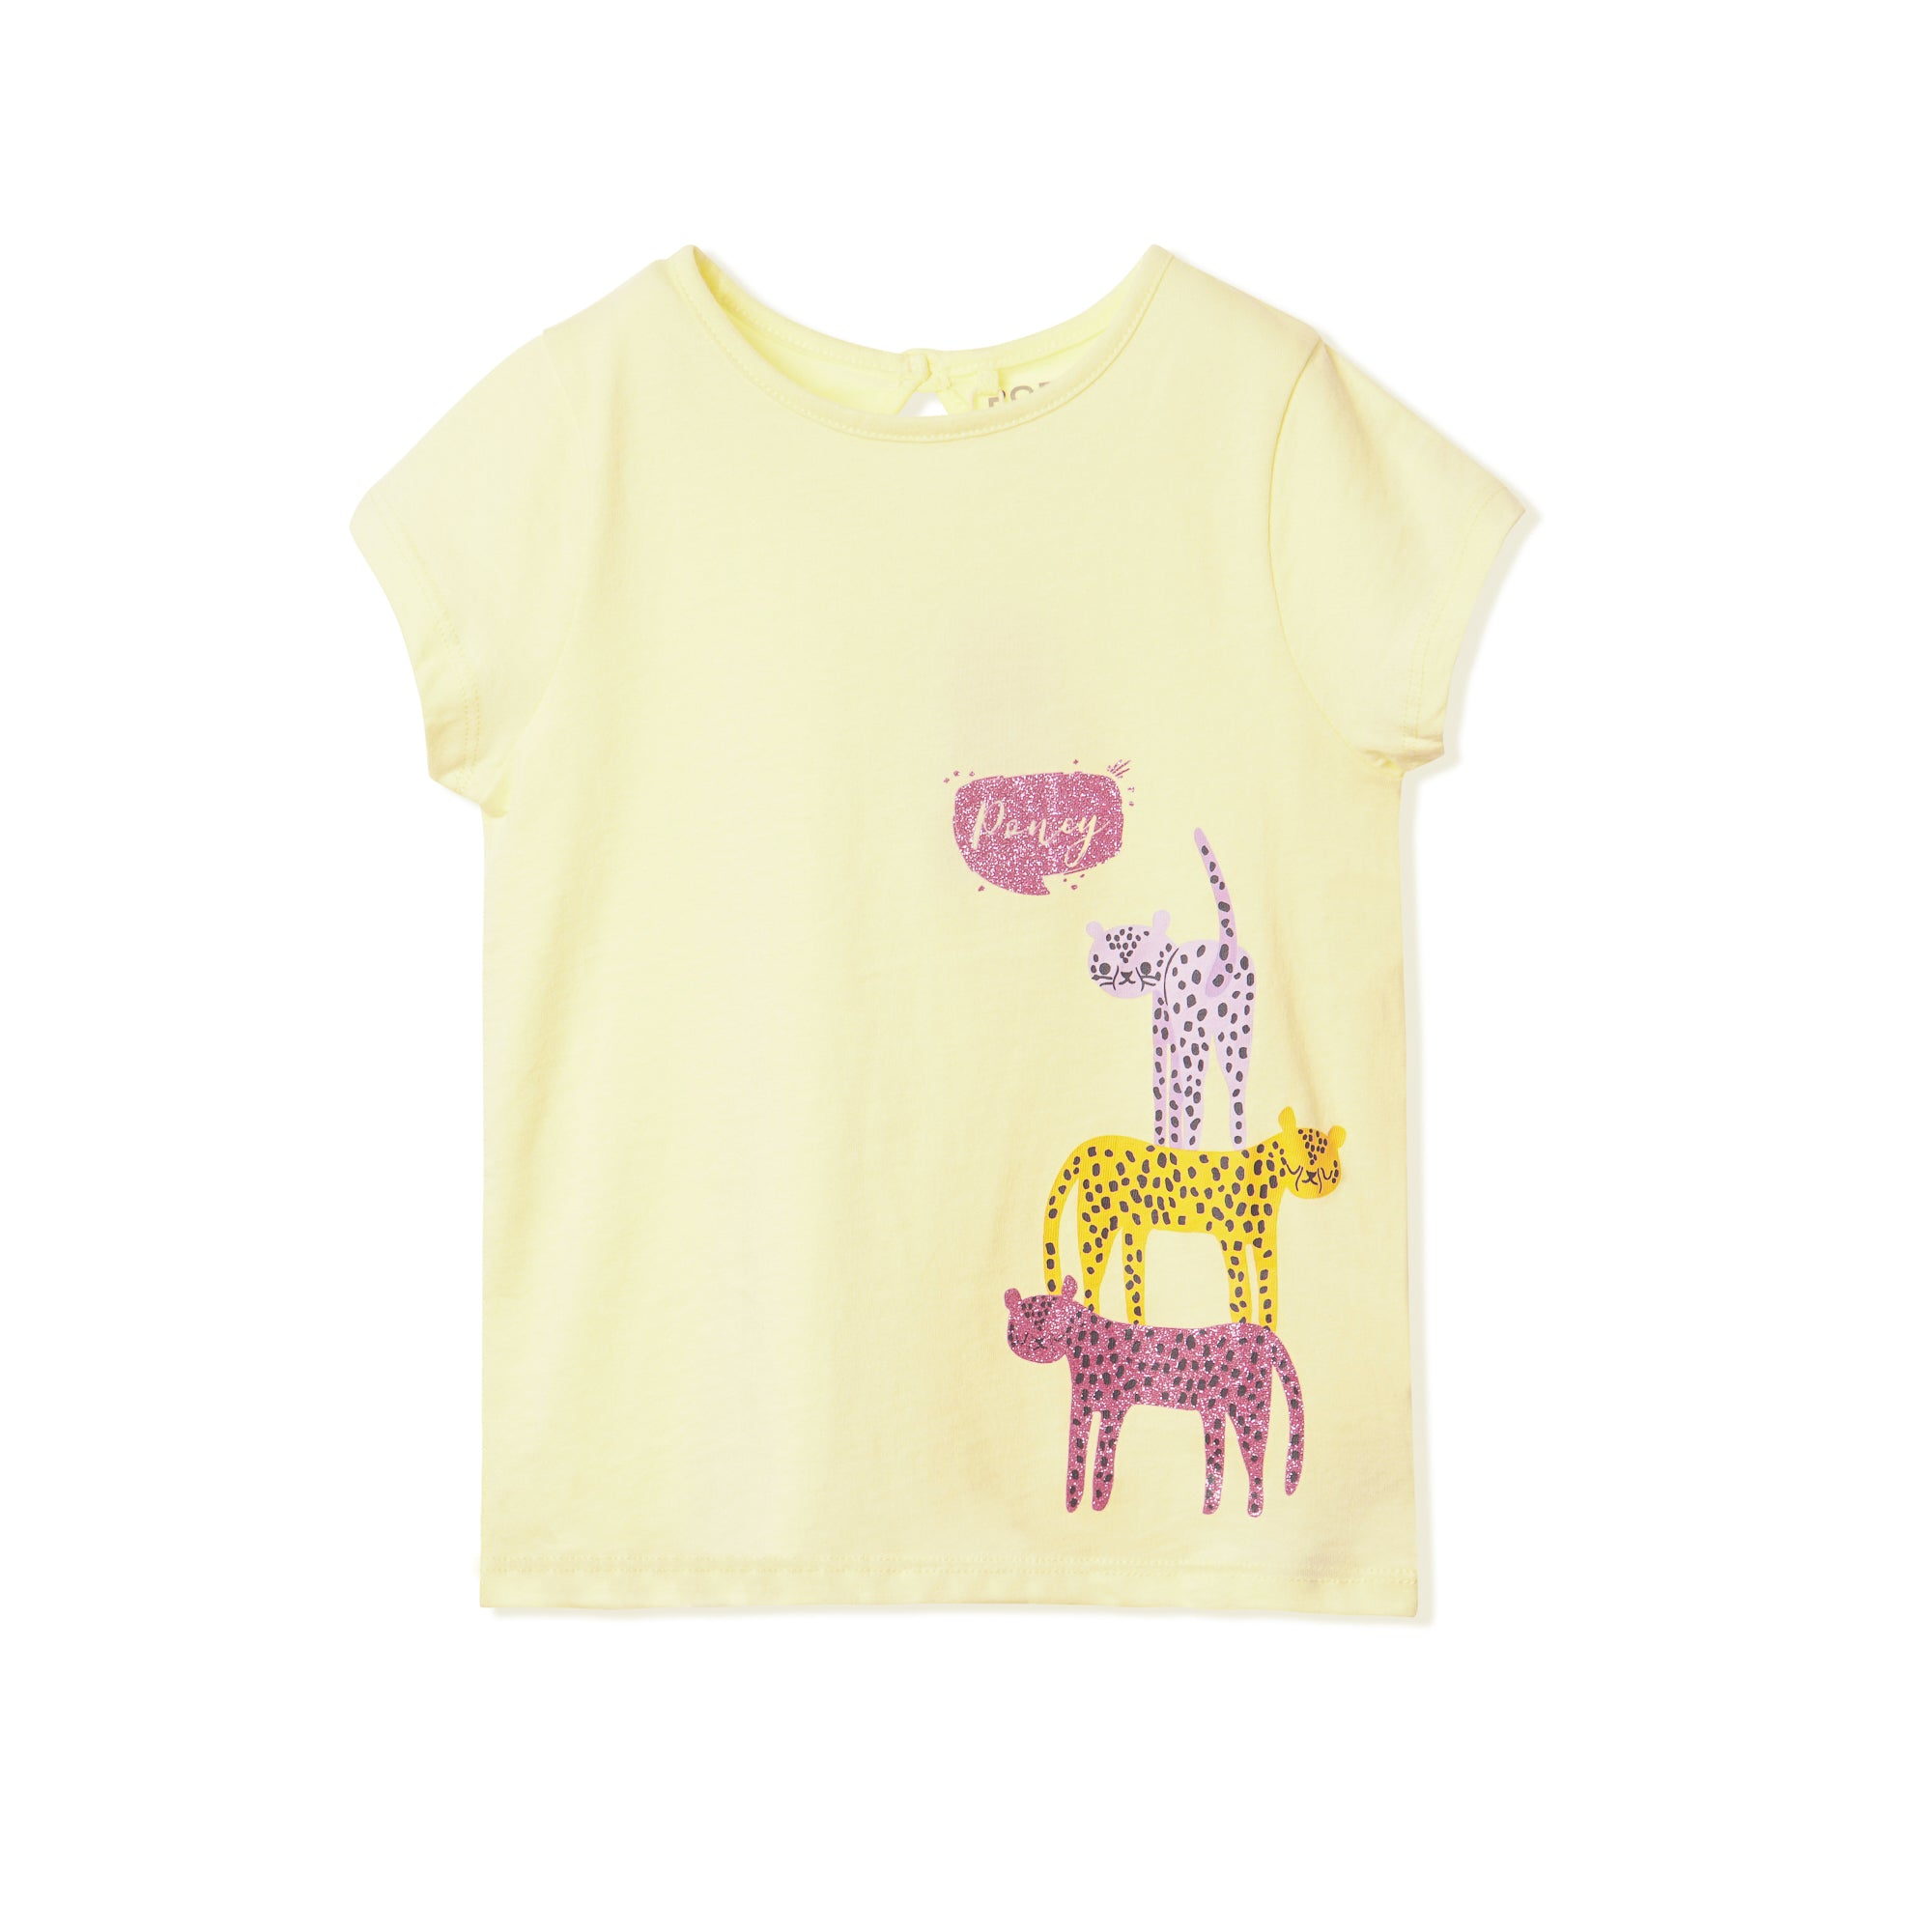 Poney Girls ShortSleeve Tee 8453 (6mths-12yrs)